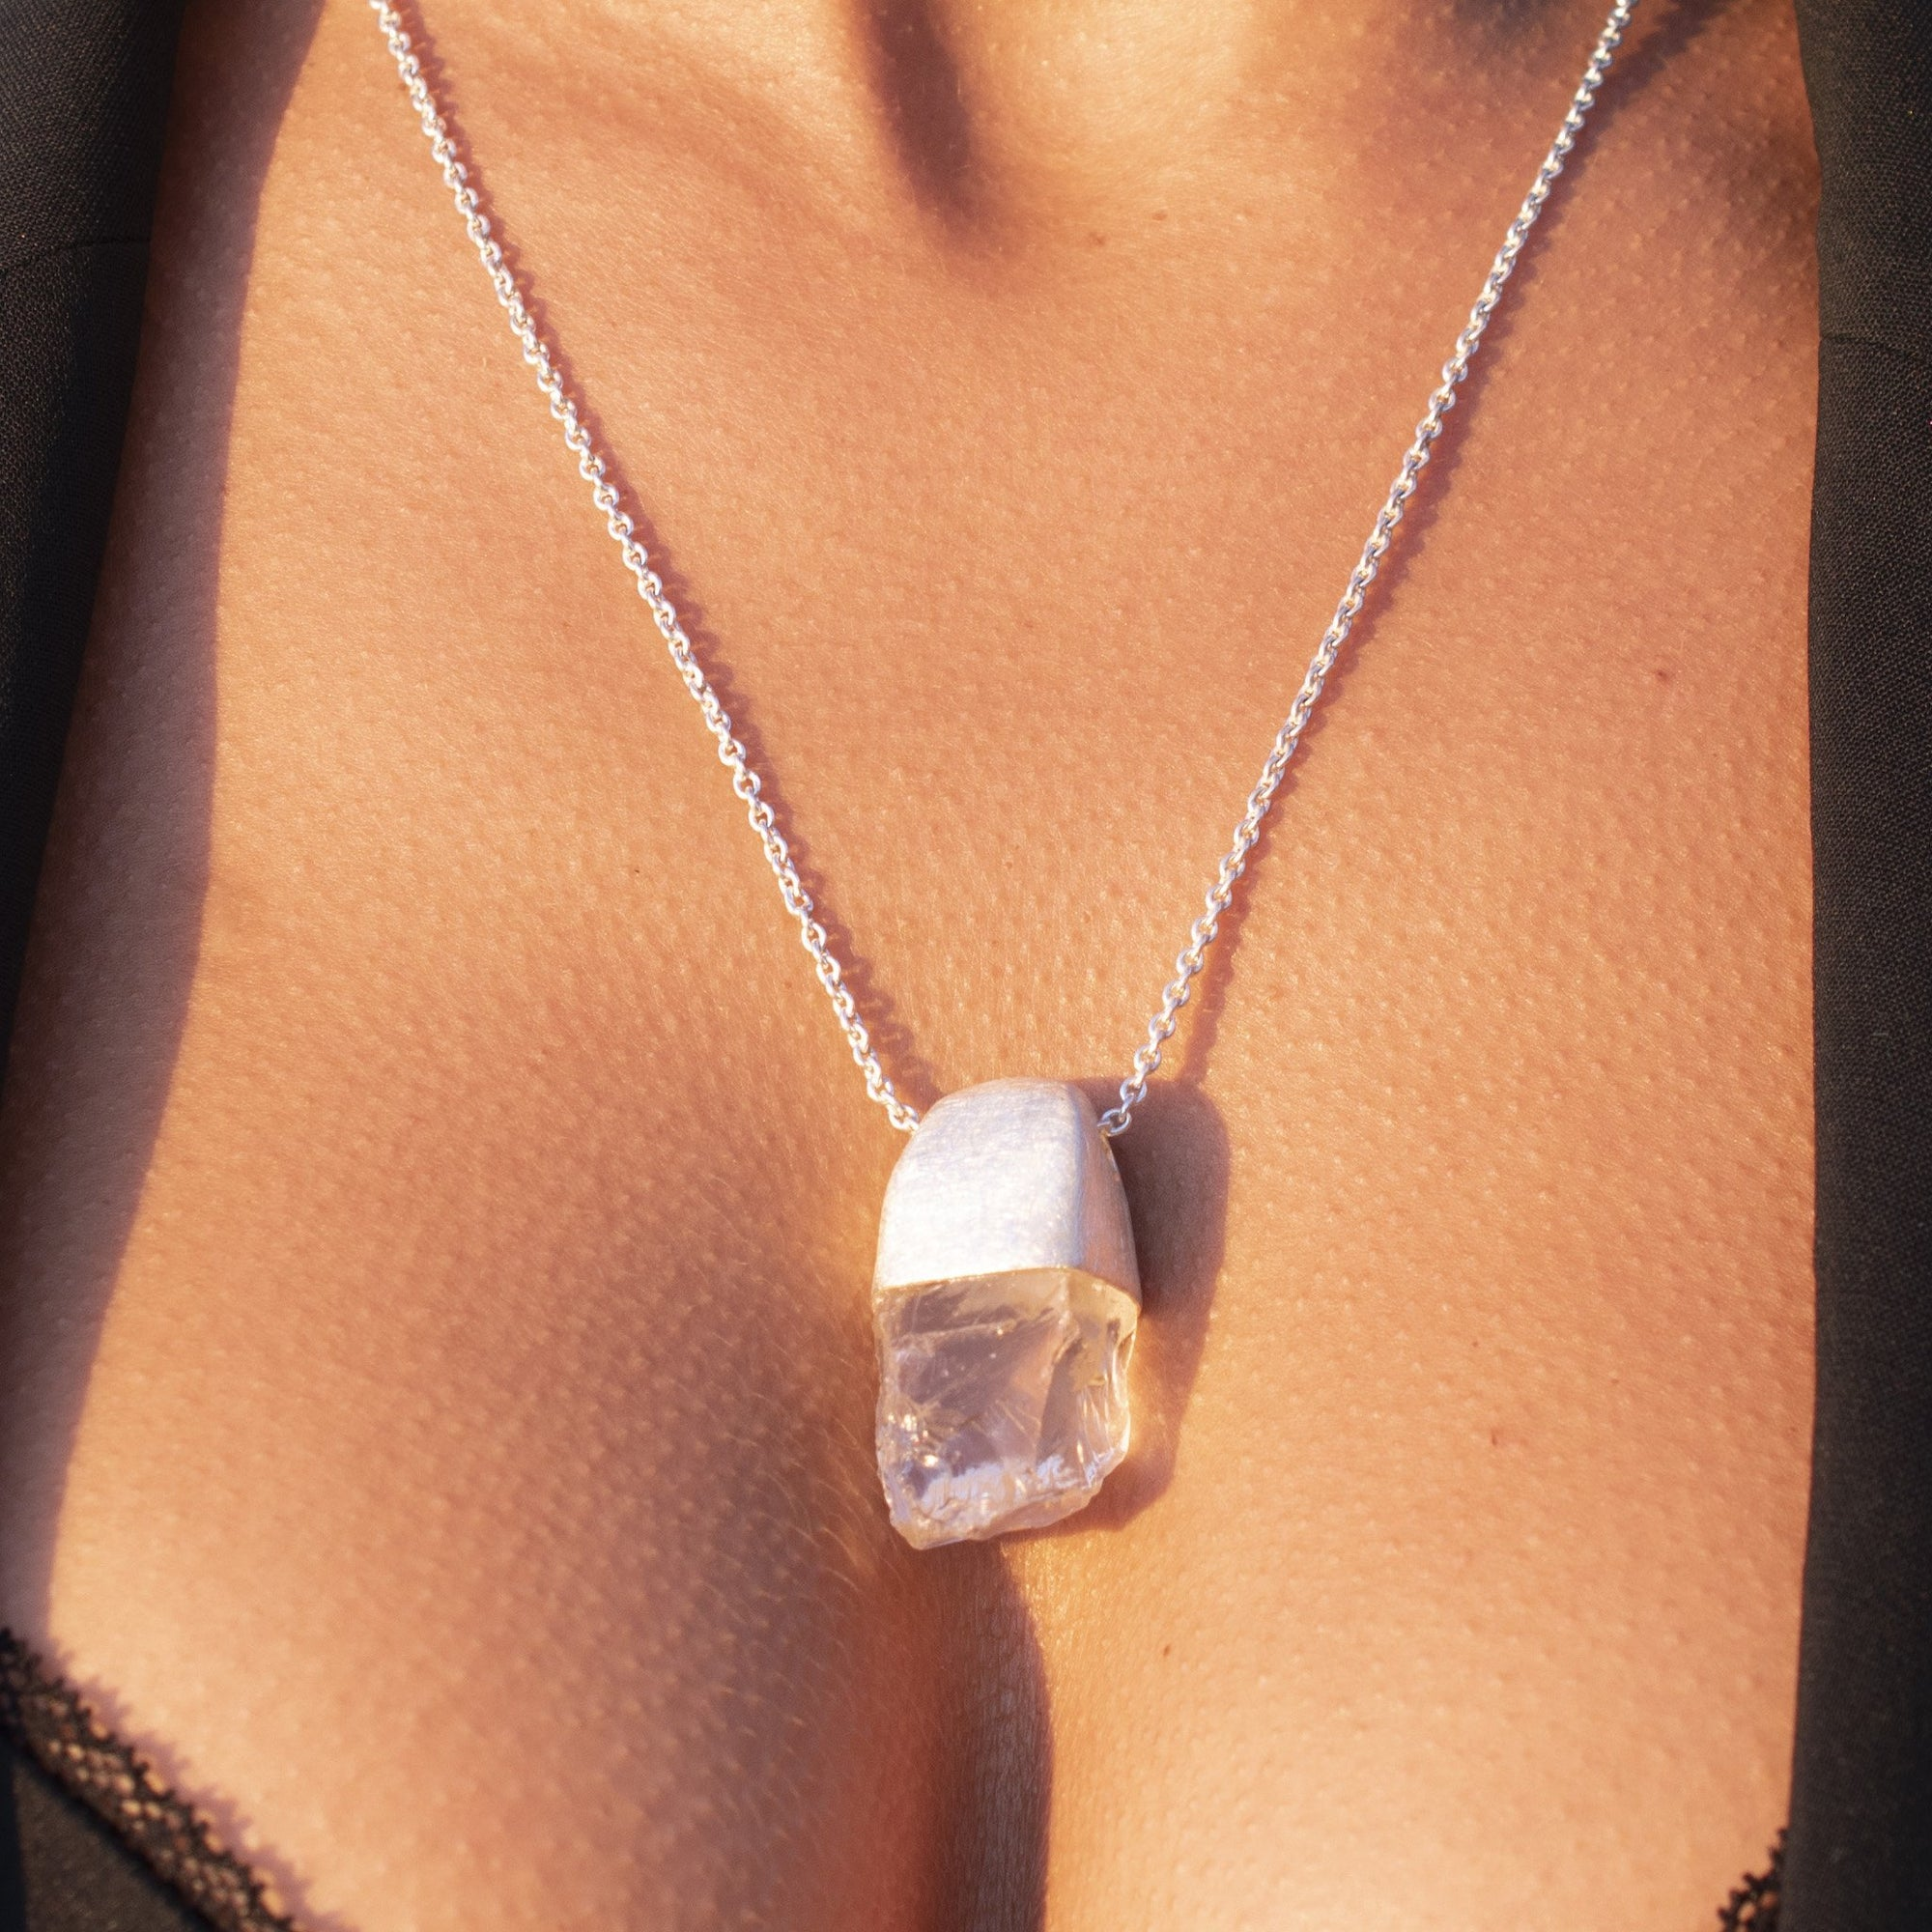 MAGNUM CLEAR QUARTZ PENDANT - One-of-a-kind